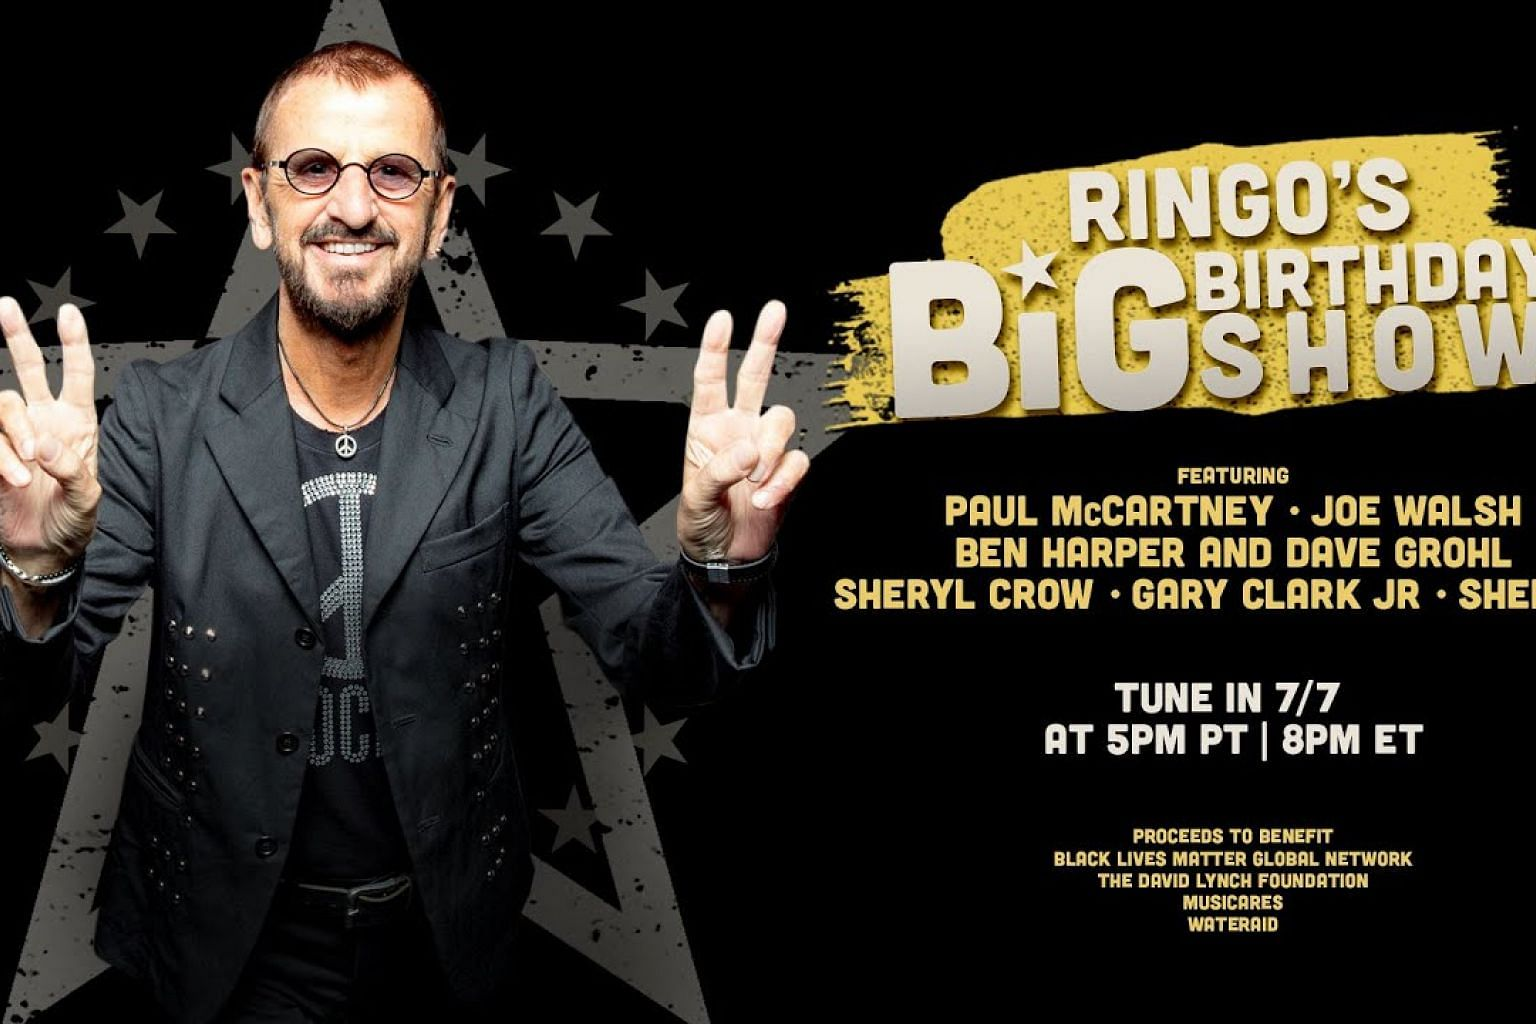 Tune In 7/7 For Ringo's Big Birthday Show!